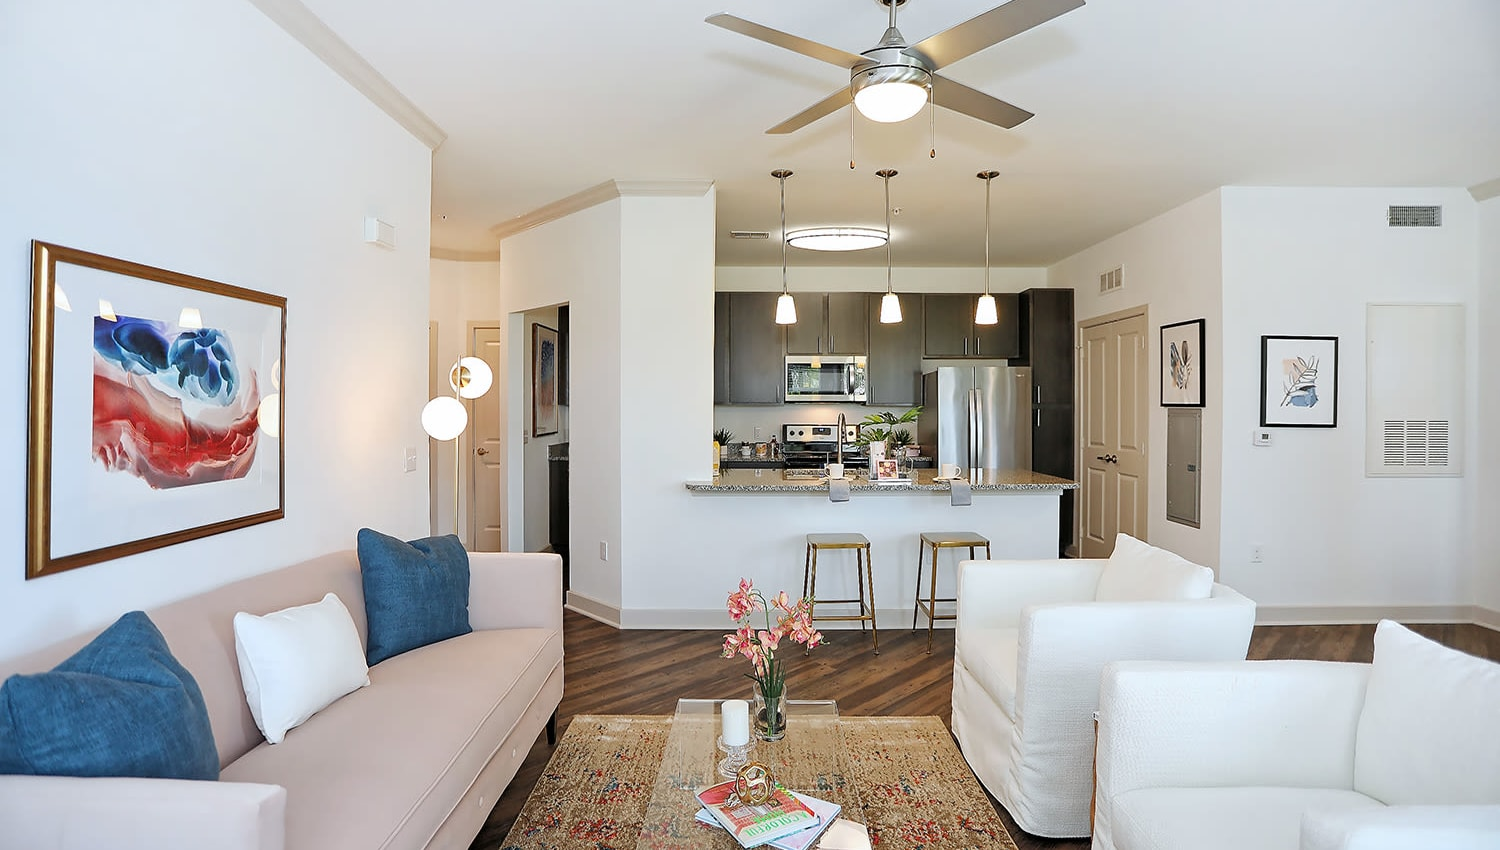 Ceiling fan in the living area of a model apartment at The Slate in Savannah, Georgia